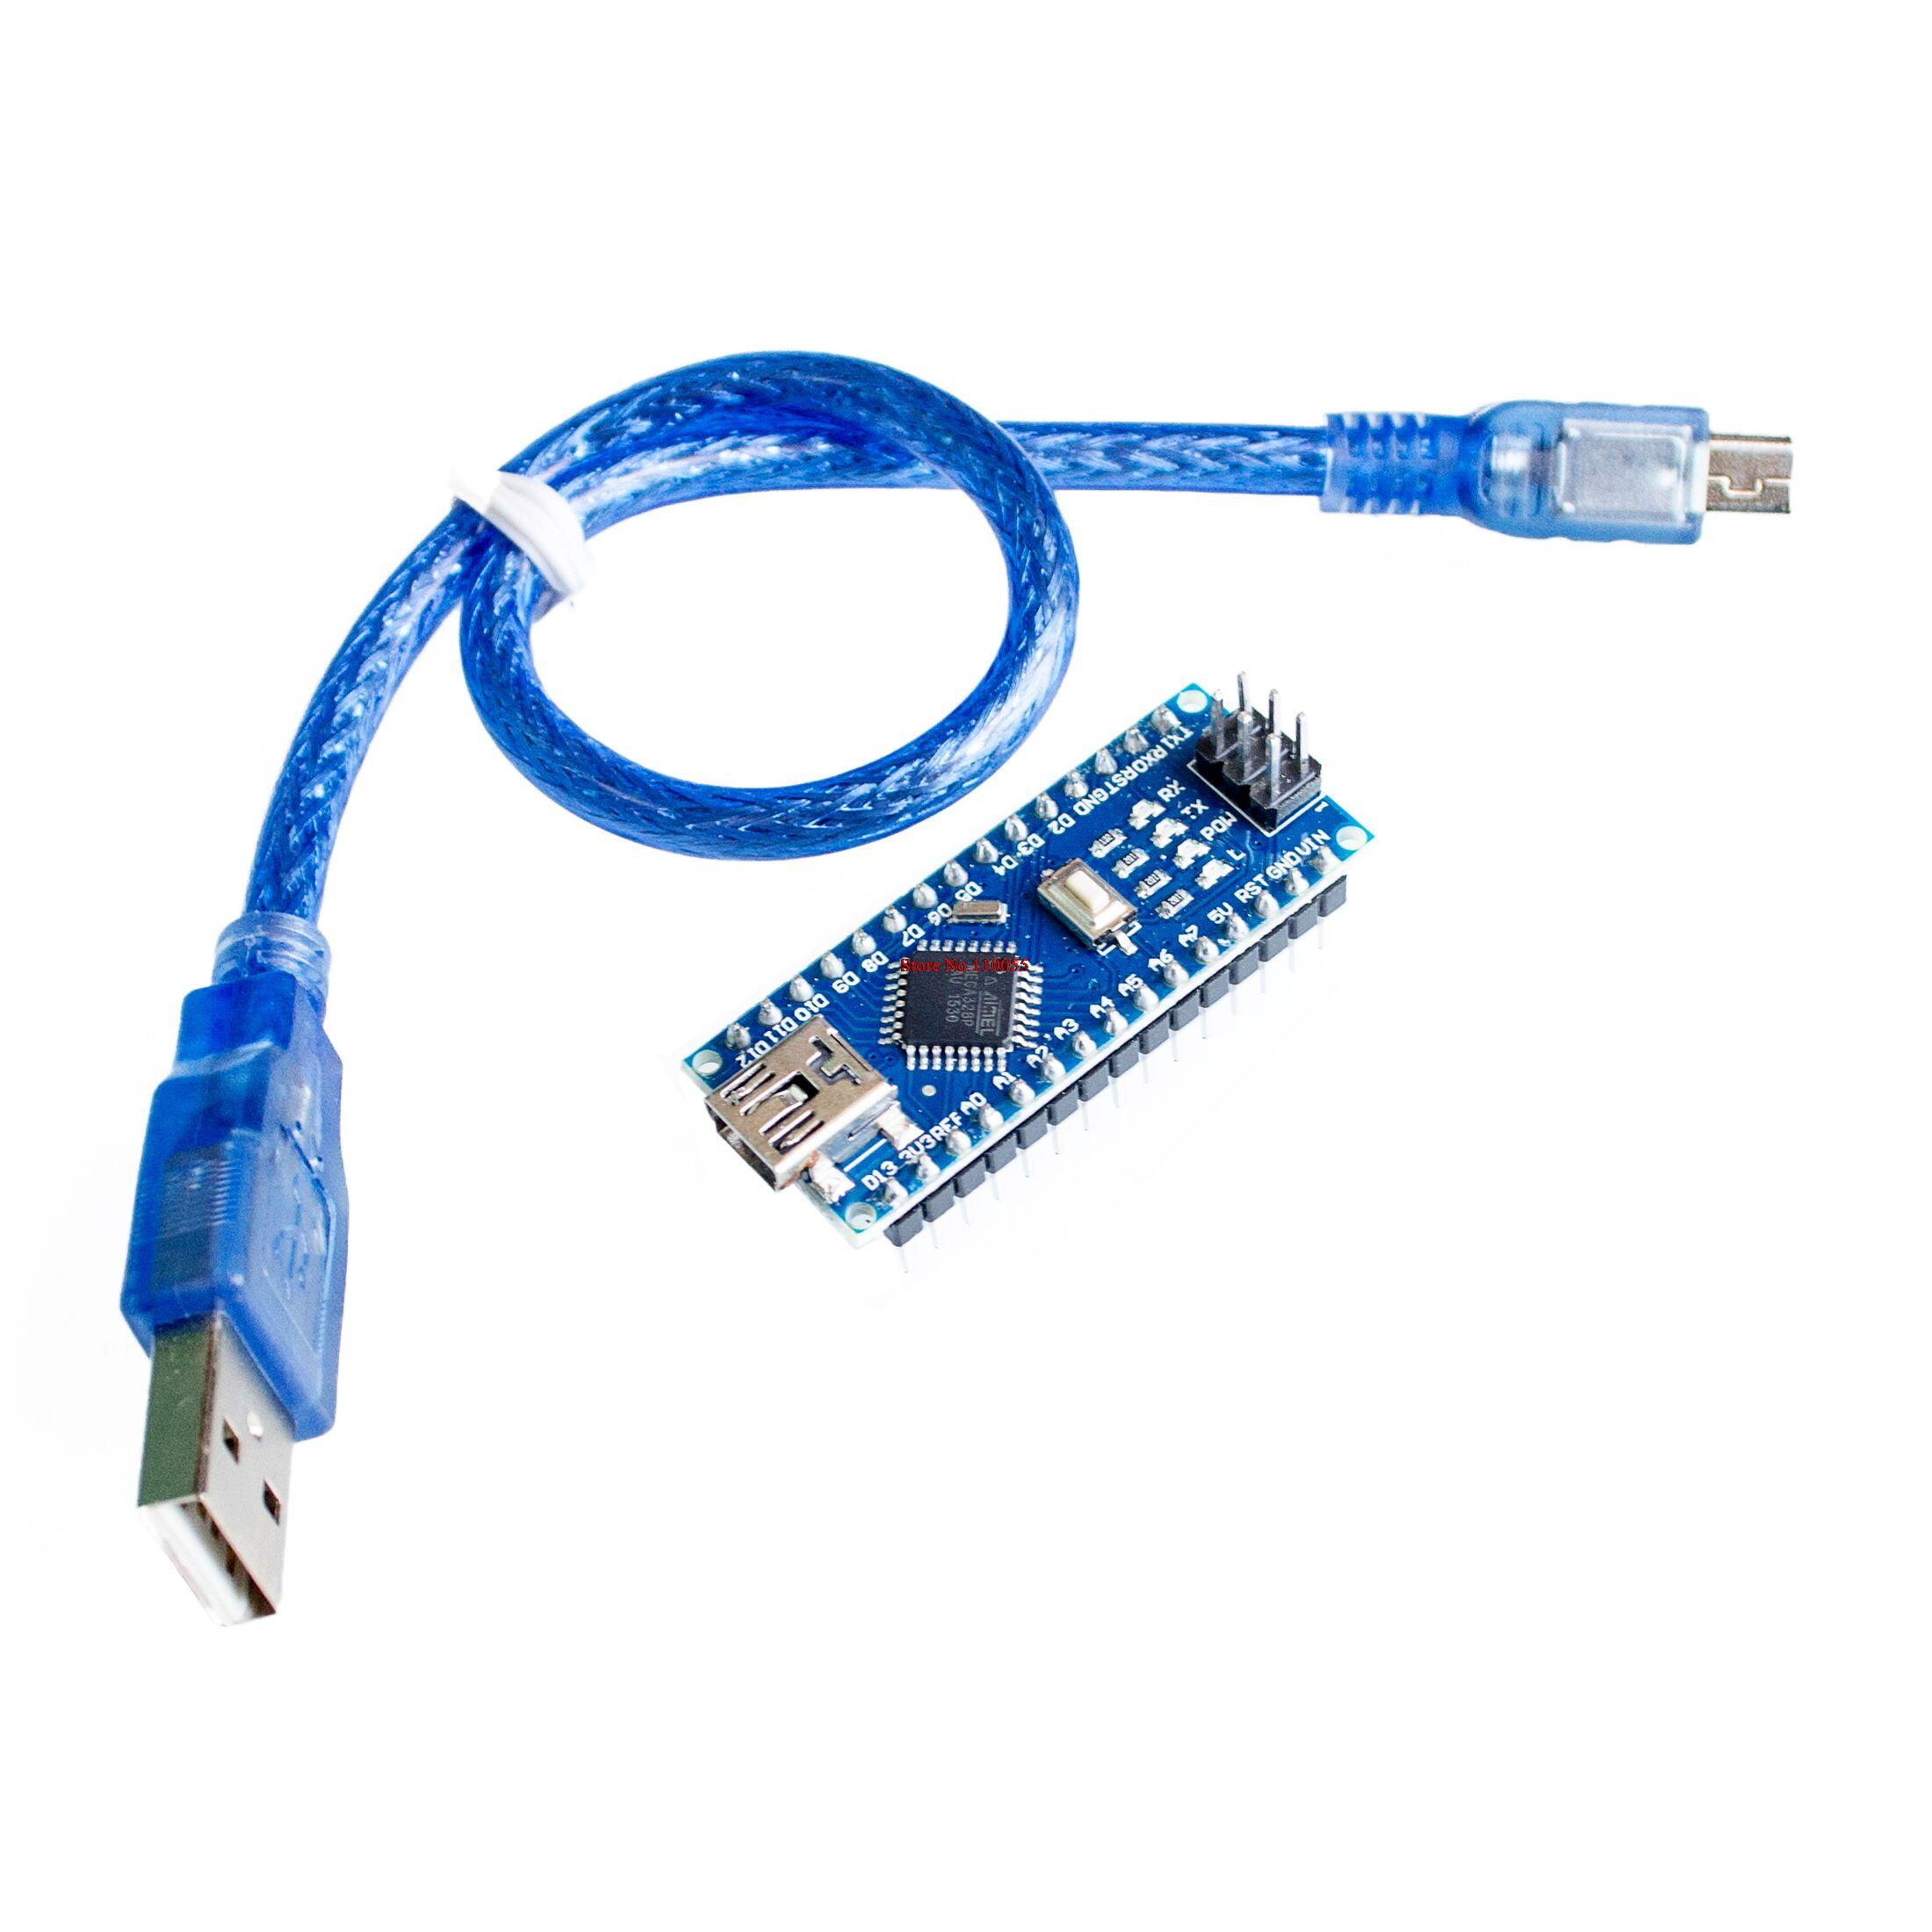 For arduino Nano 3.0 Atmel ATmega328 Mini-USB Board with USB Cable Free Shipping Замок